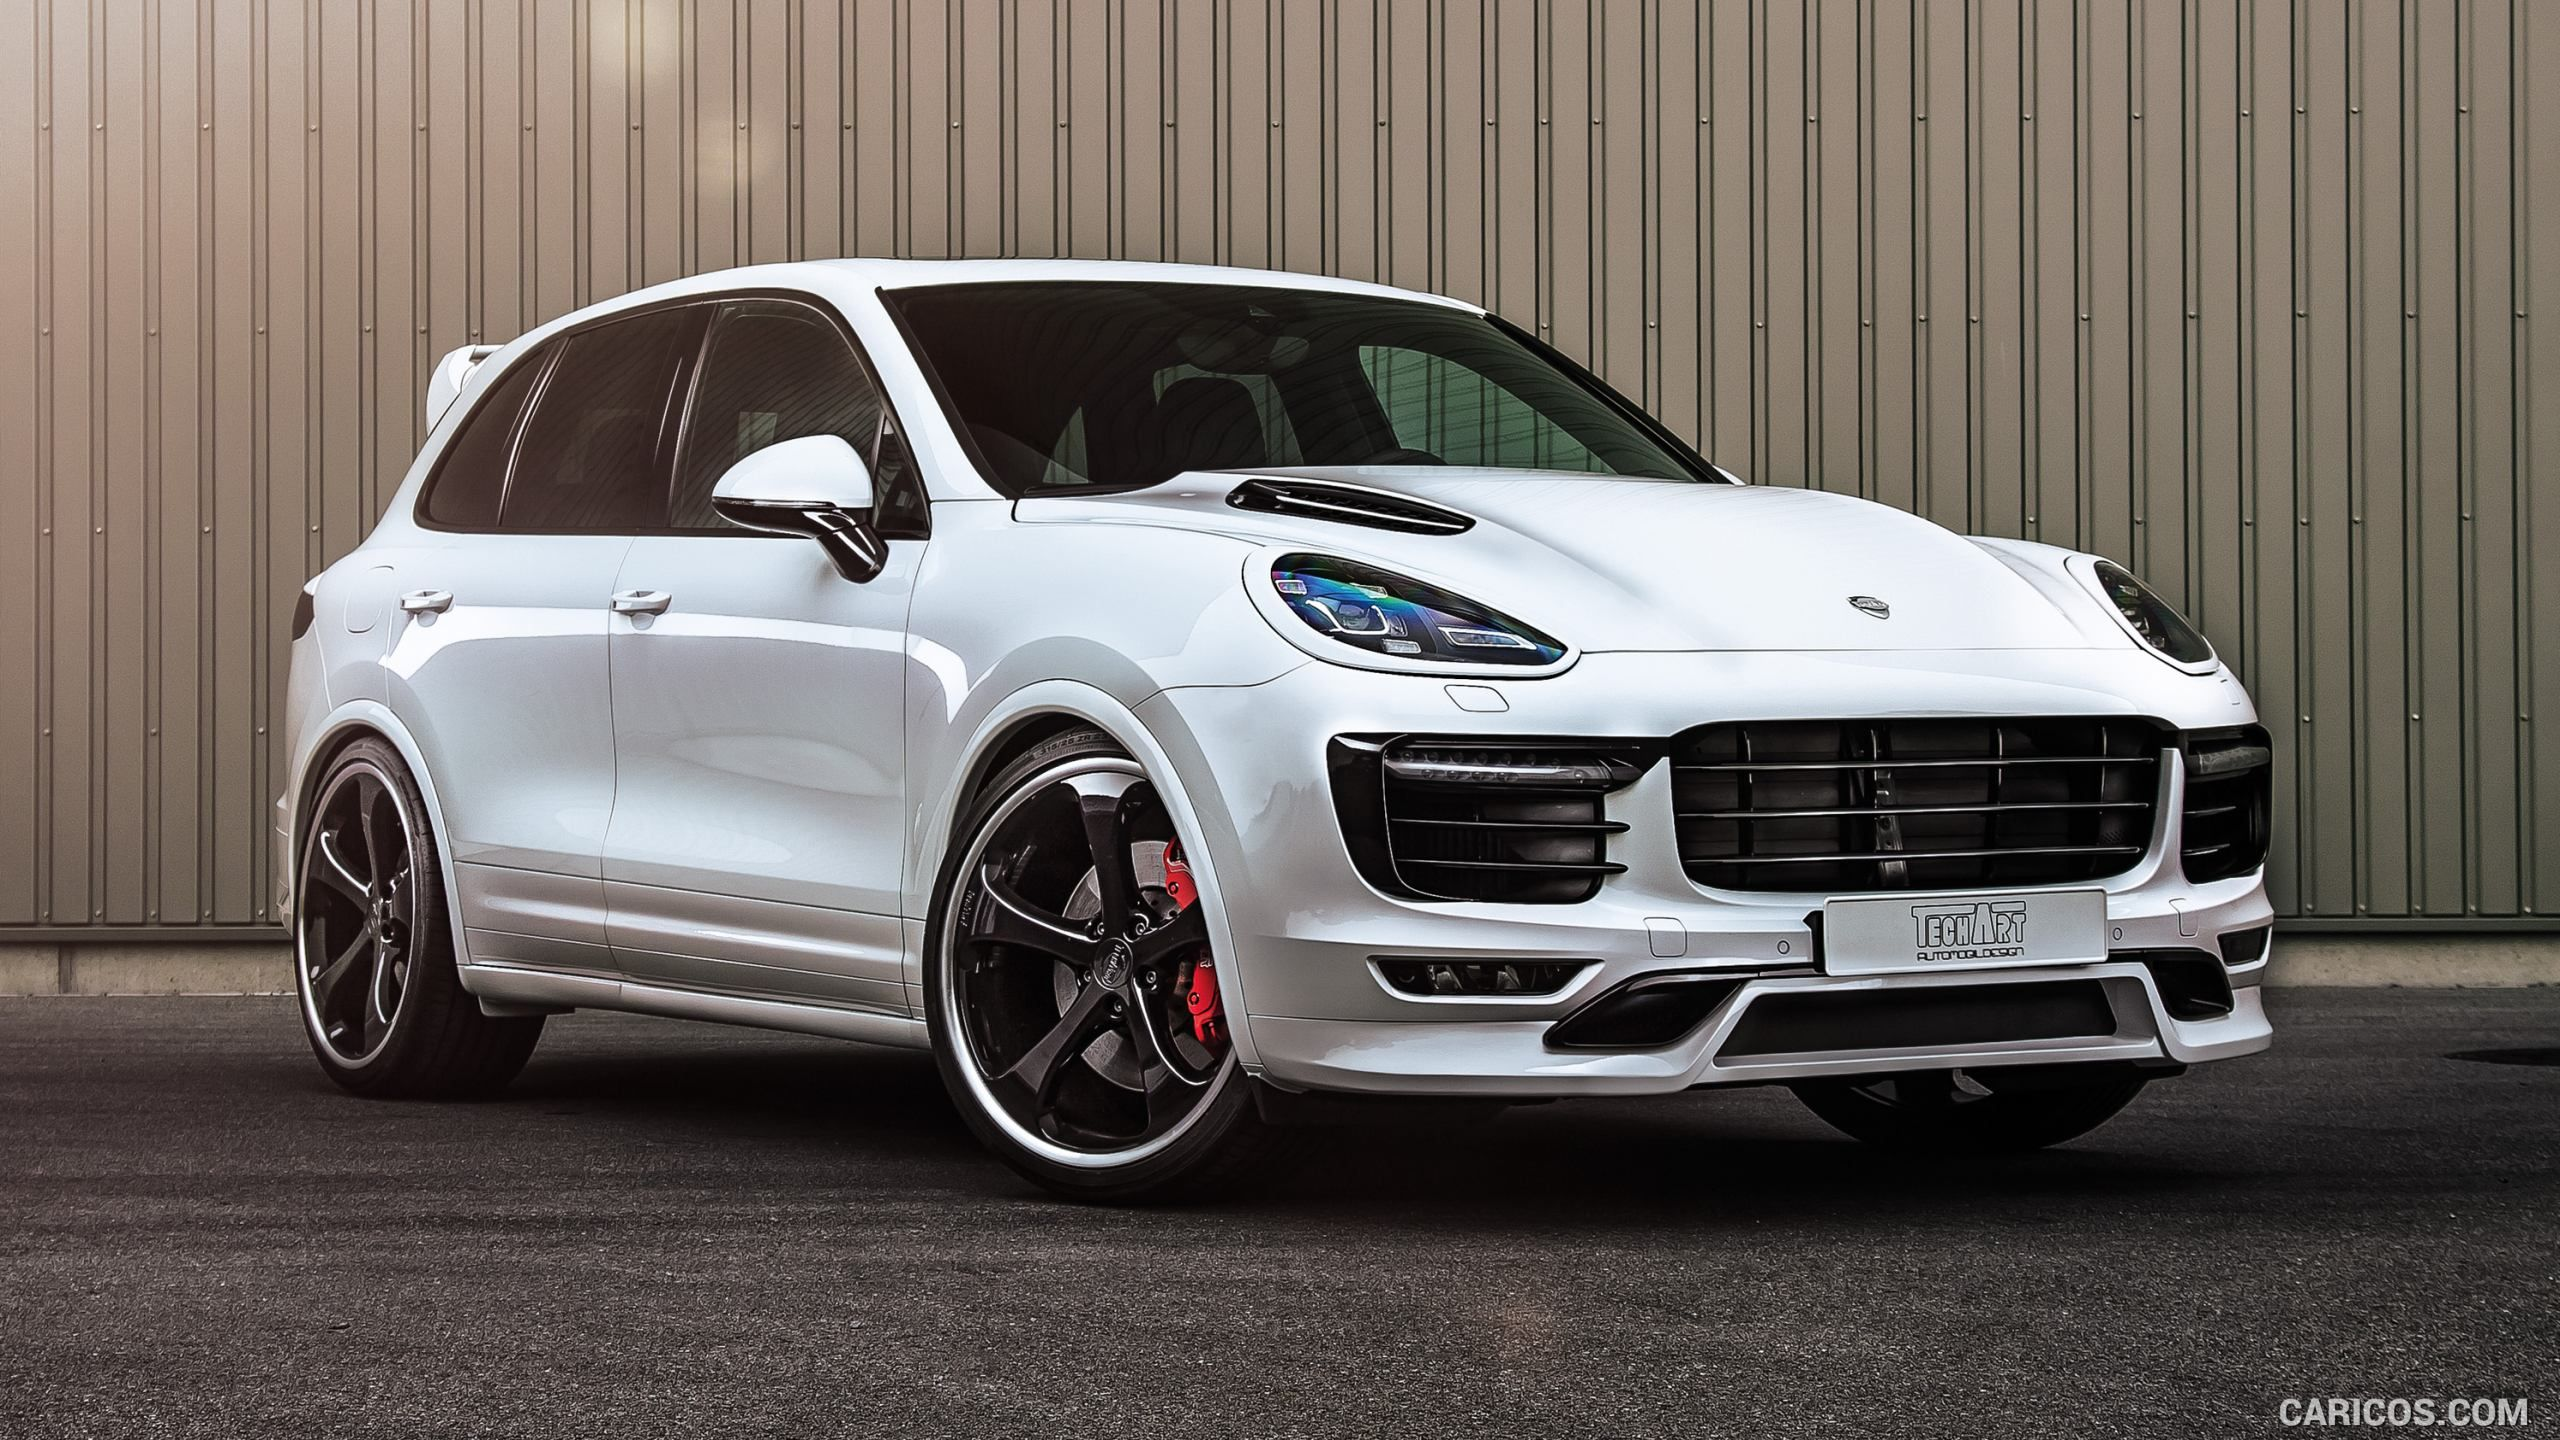 Techart blasts into porsche cayenne turbo to make it faster than the bentley bentayga